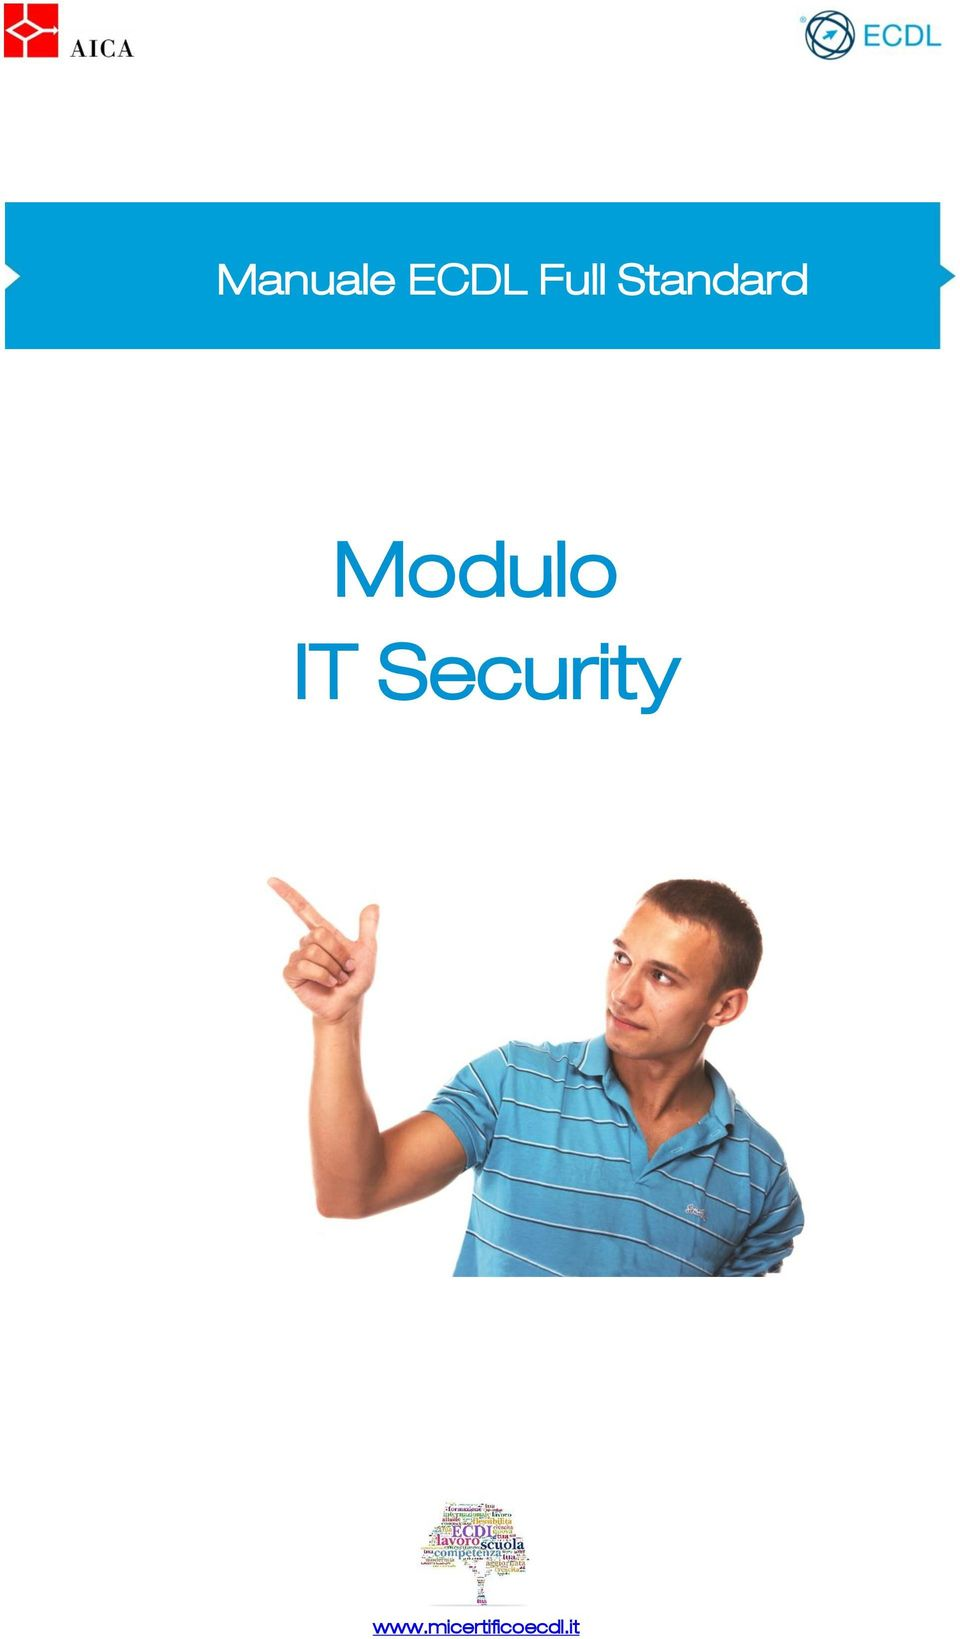 Mdul IT Security